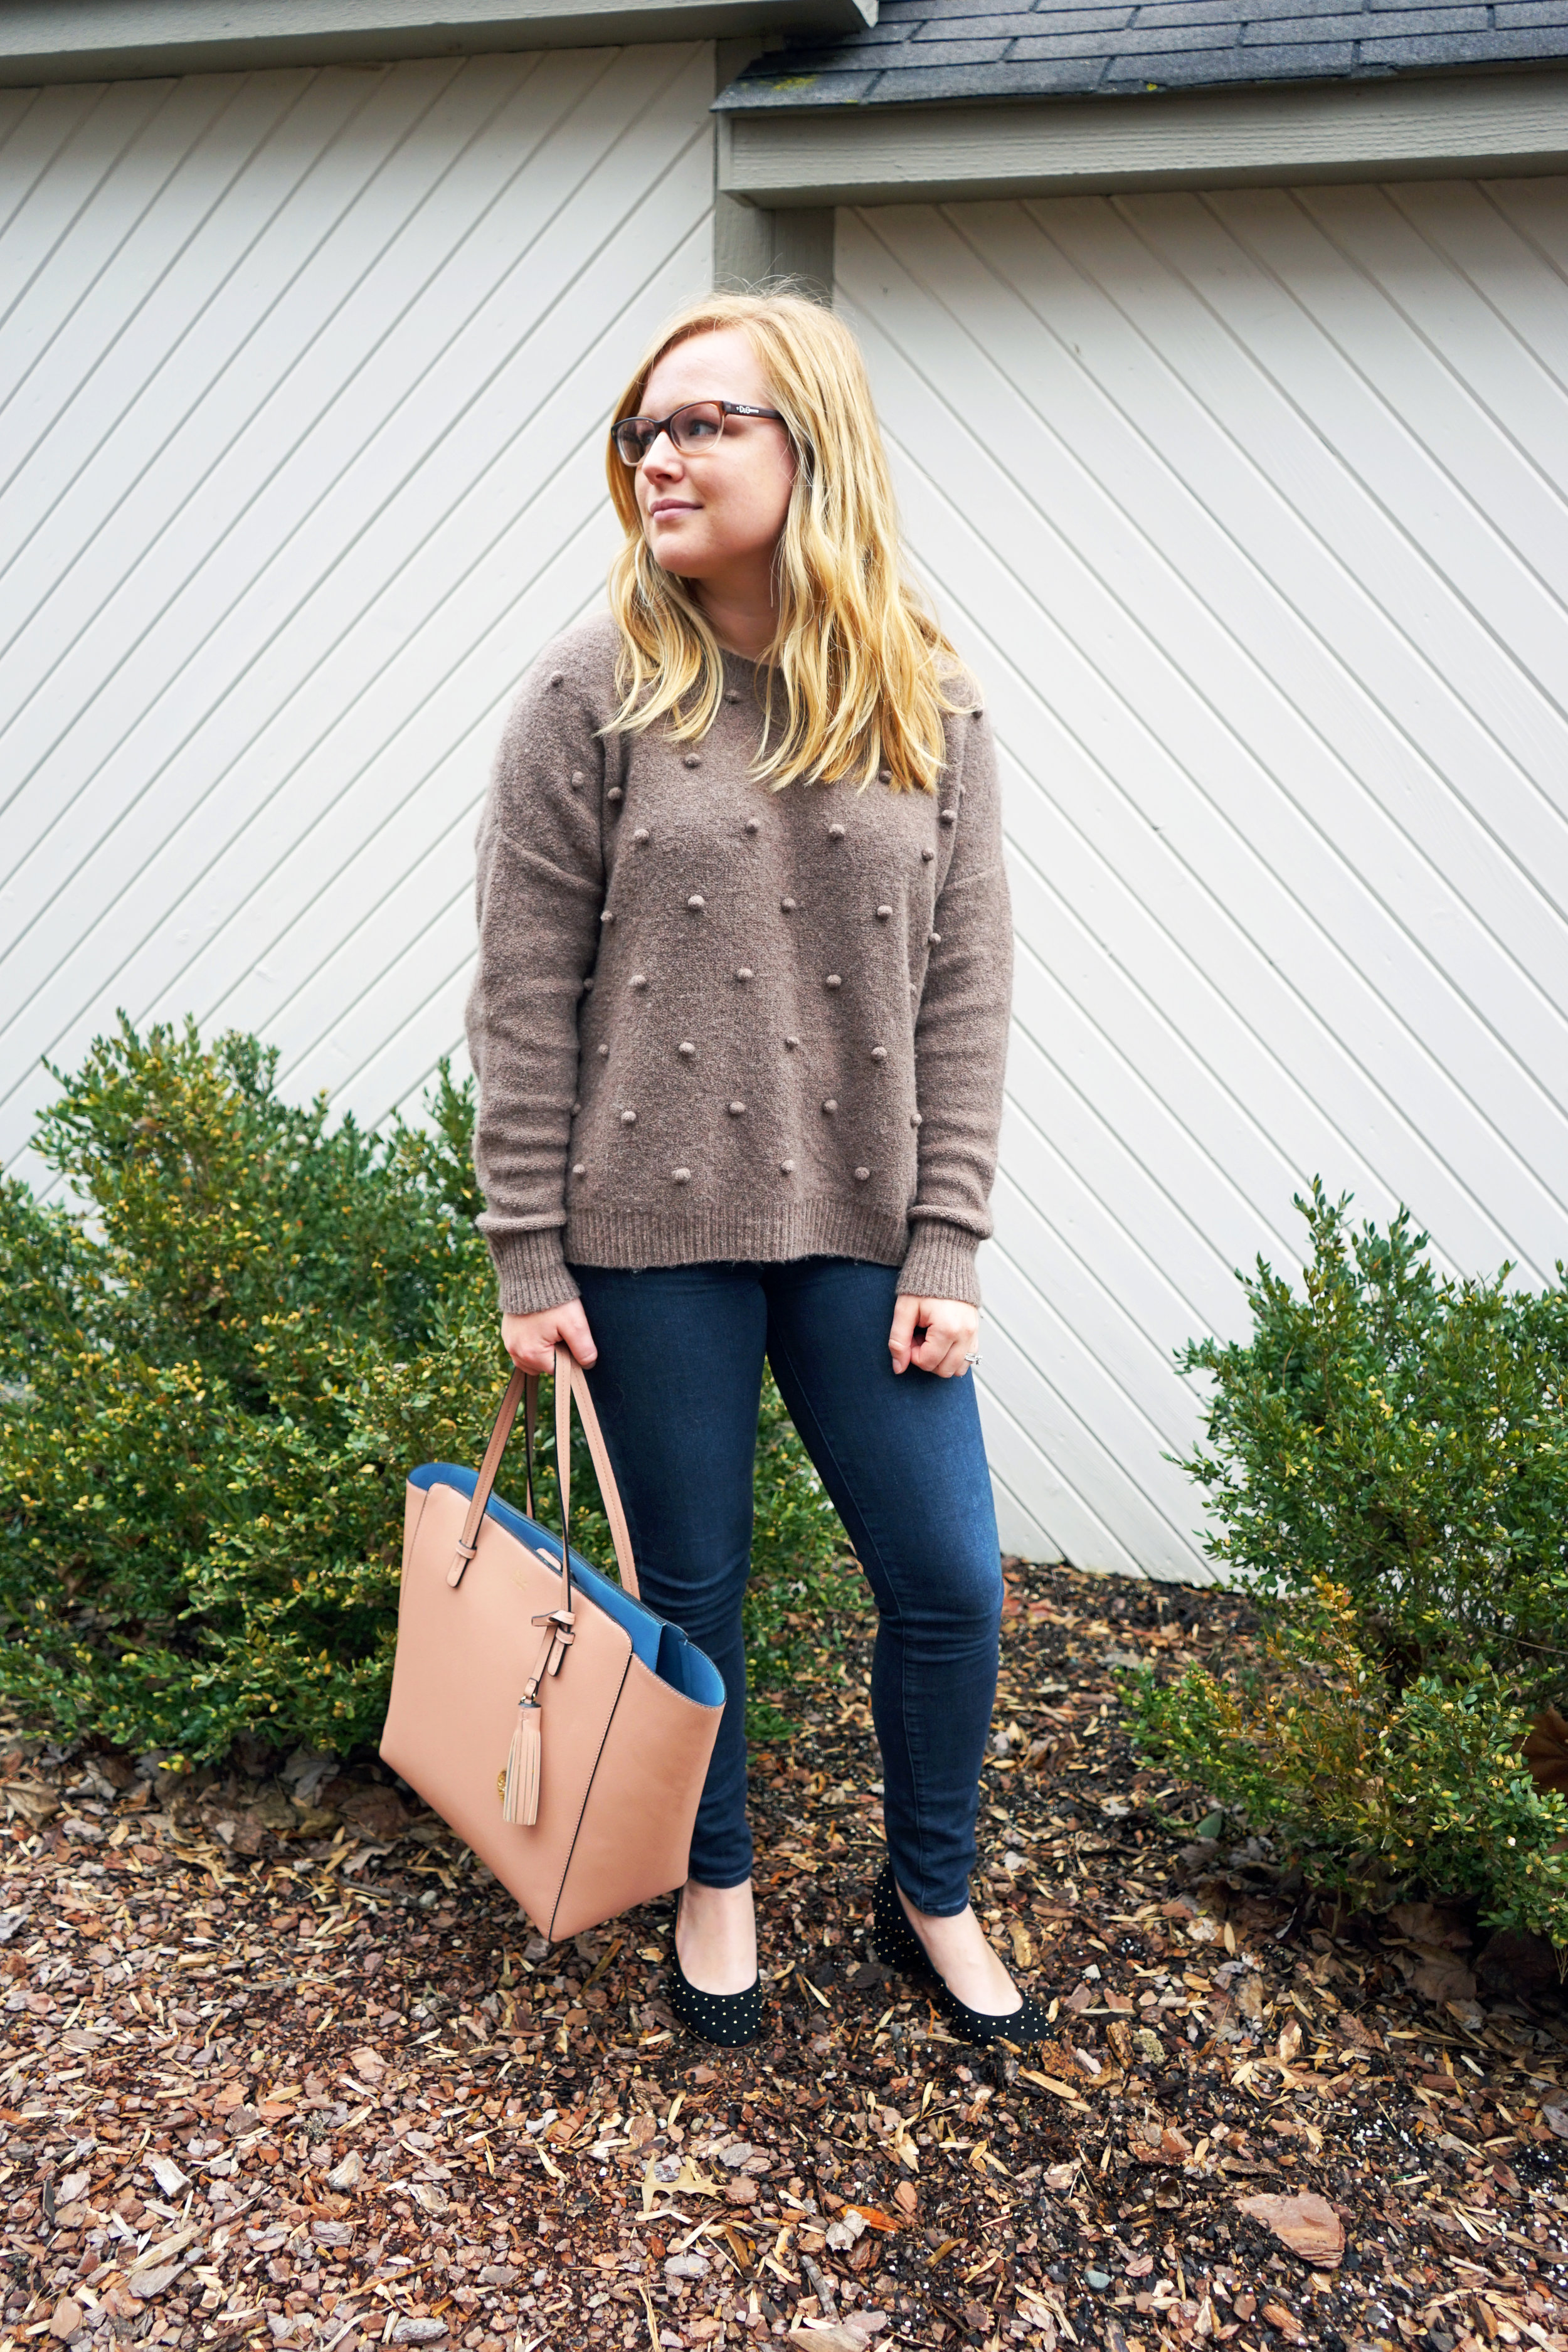 Maggie a la Mode - Madewell Bobble Pullover Sweater, Paige Denim Verdugo Skinny Jean Reed, Sezane Ashley Babies, Blue Les Copains tote